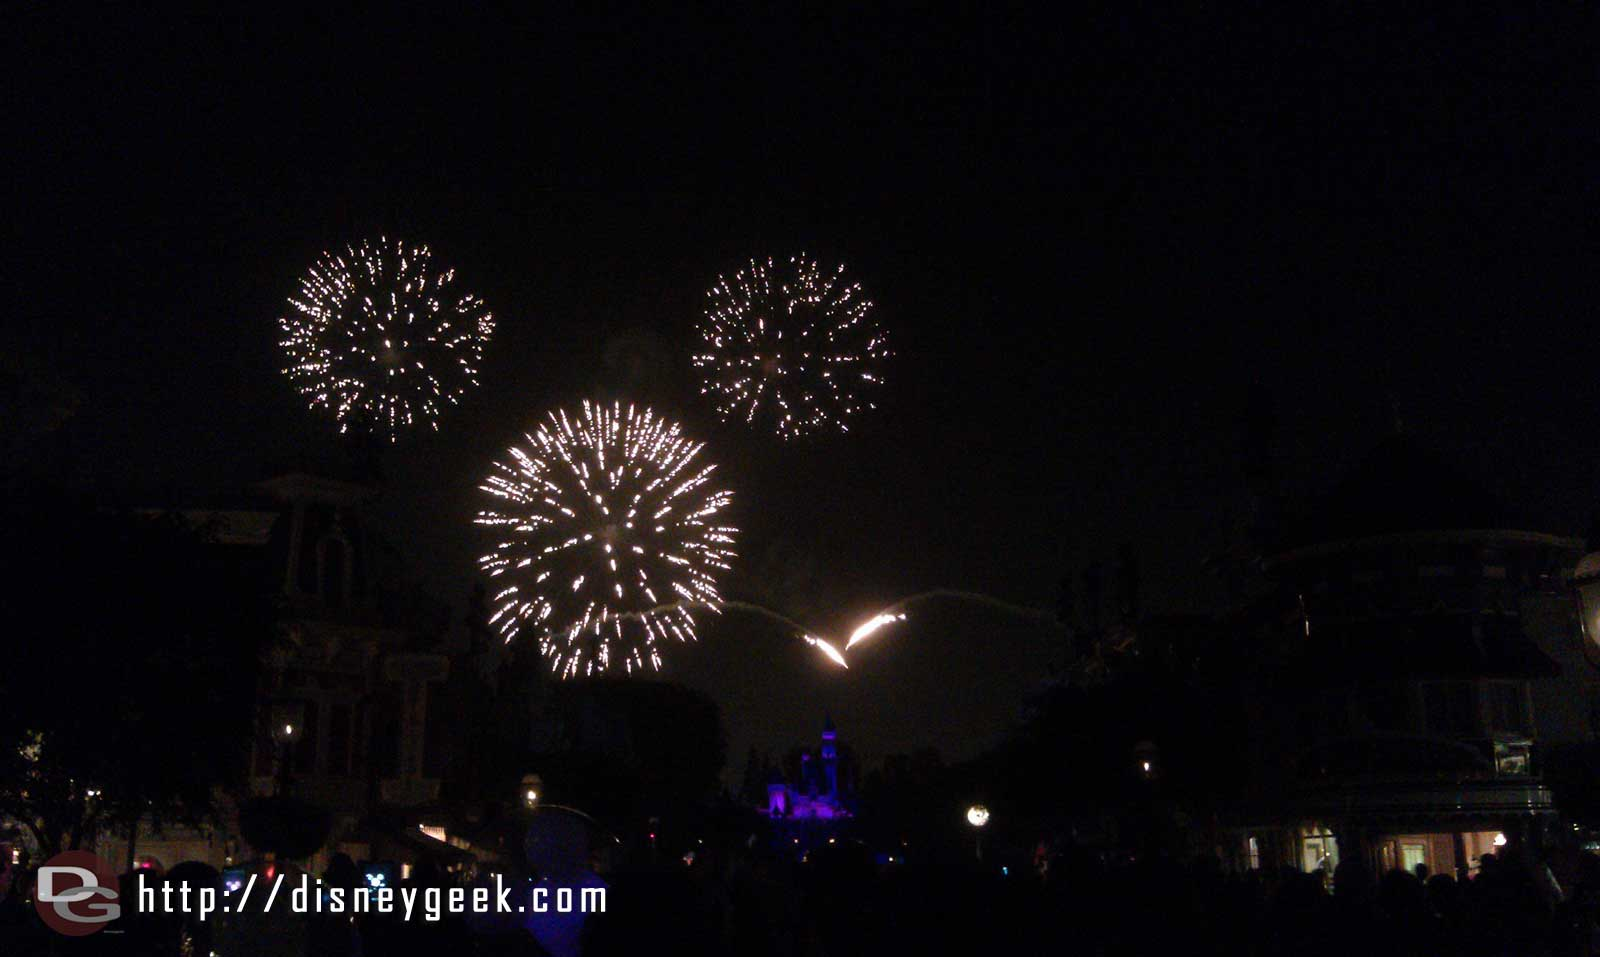 Closing out the evening with Remember Dreams Come True fireworks